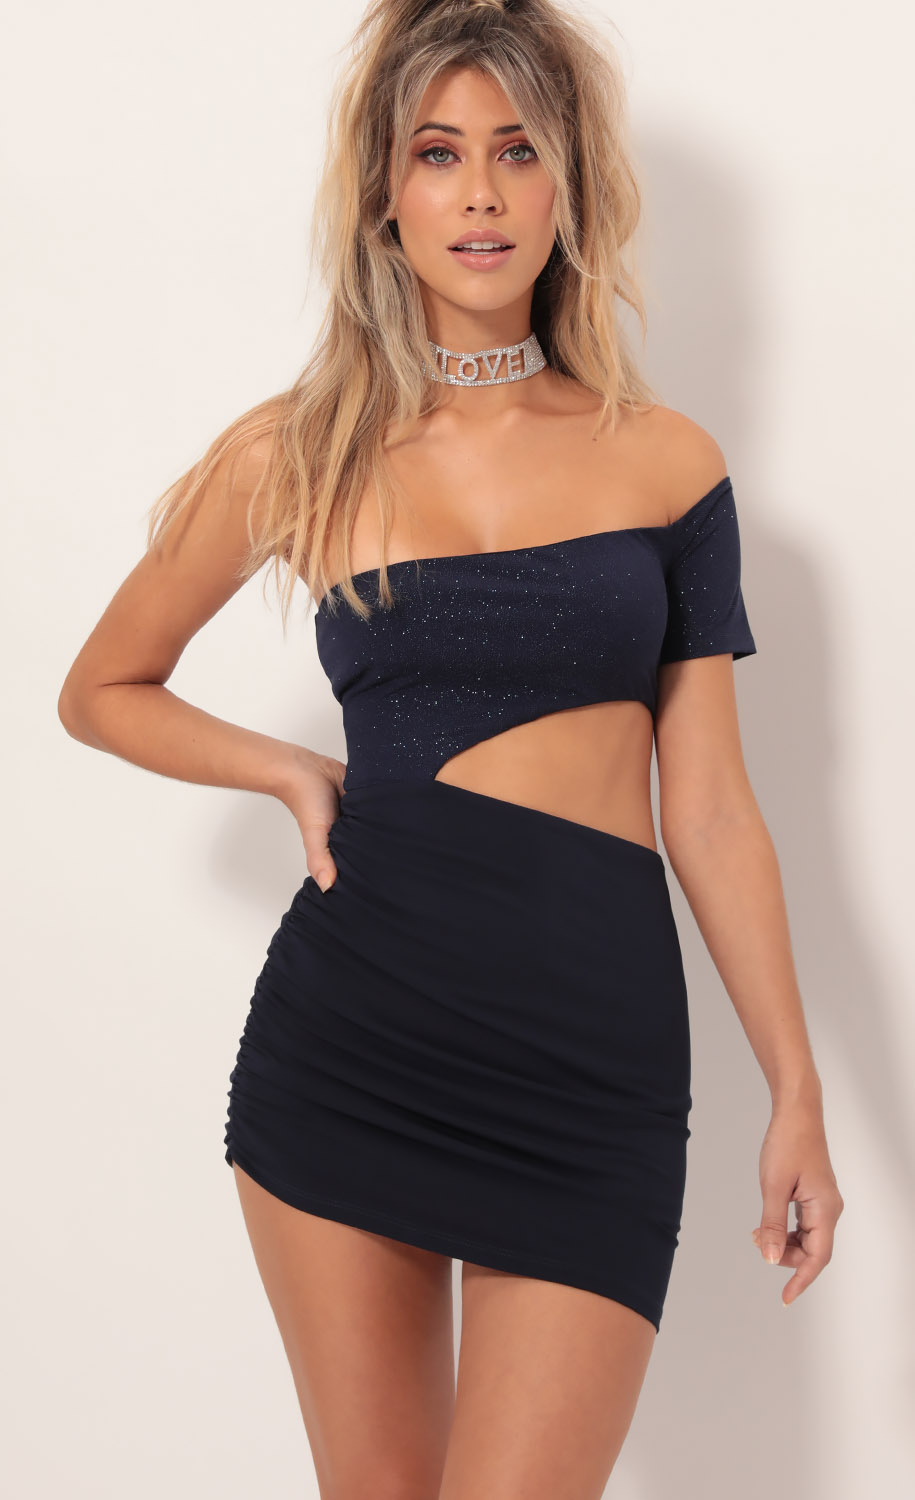 Marla Asymmetric Cutout Dress in Sparkling Navy